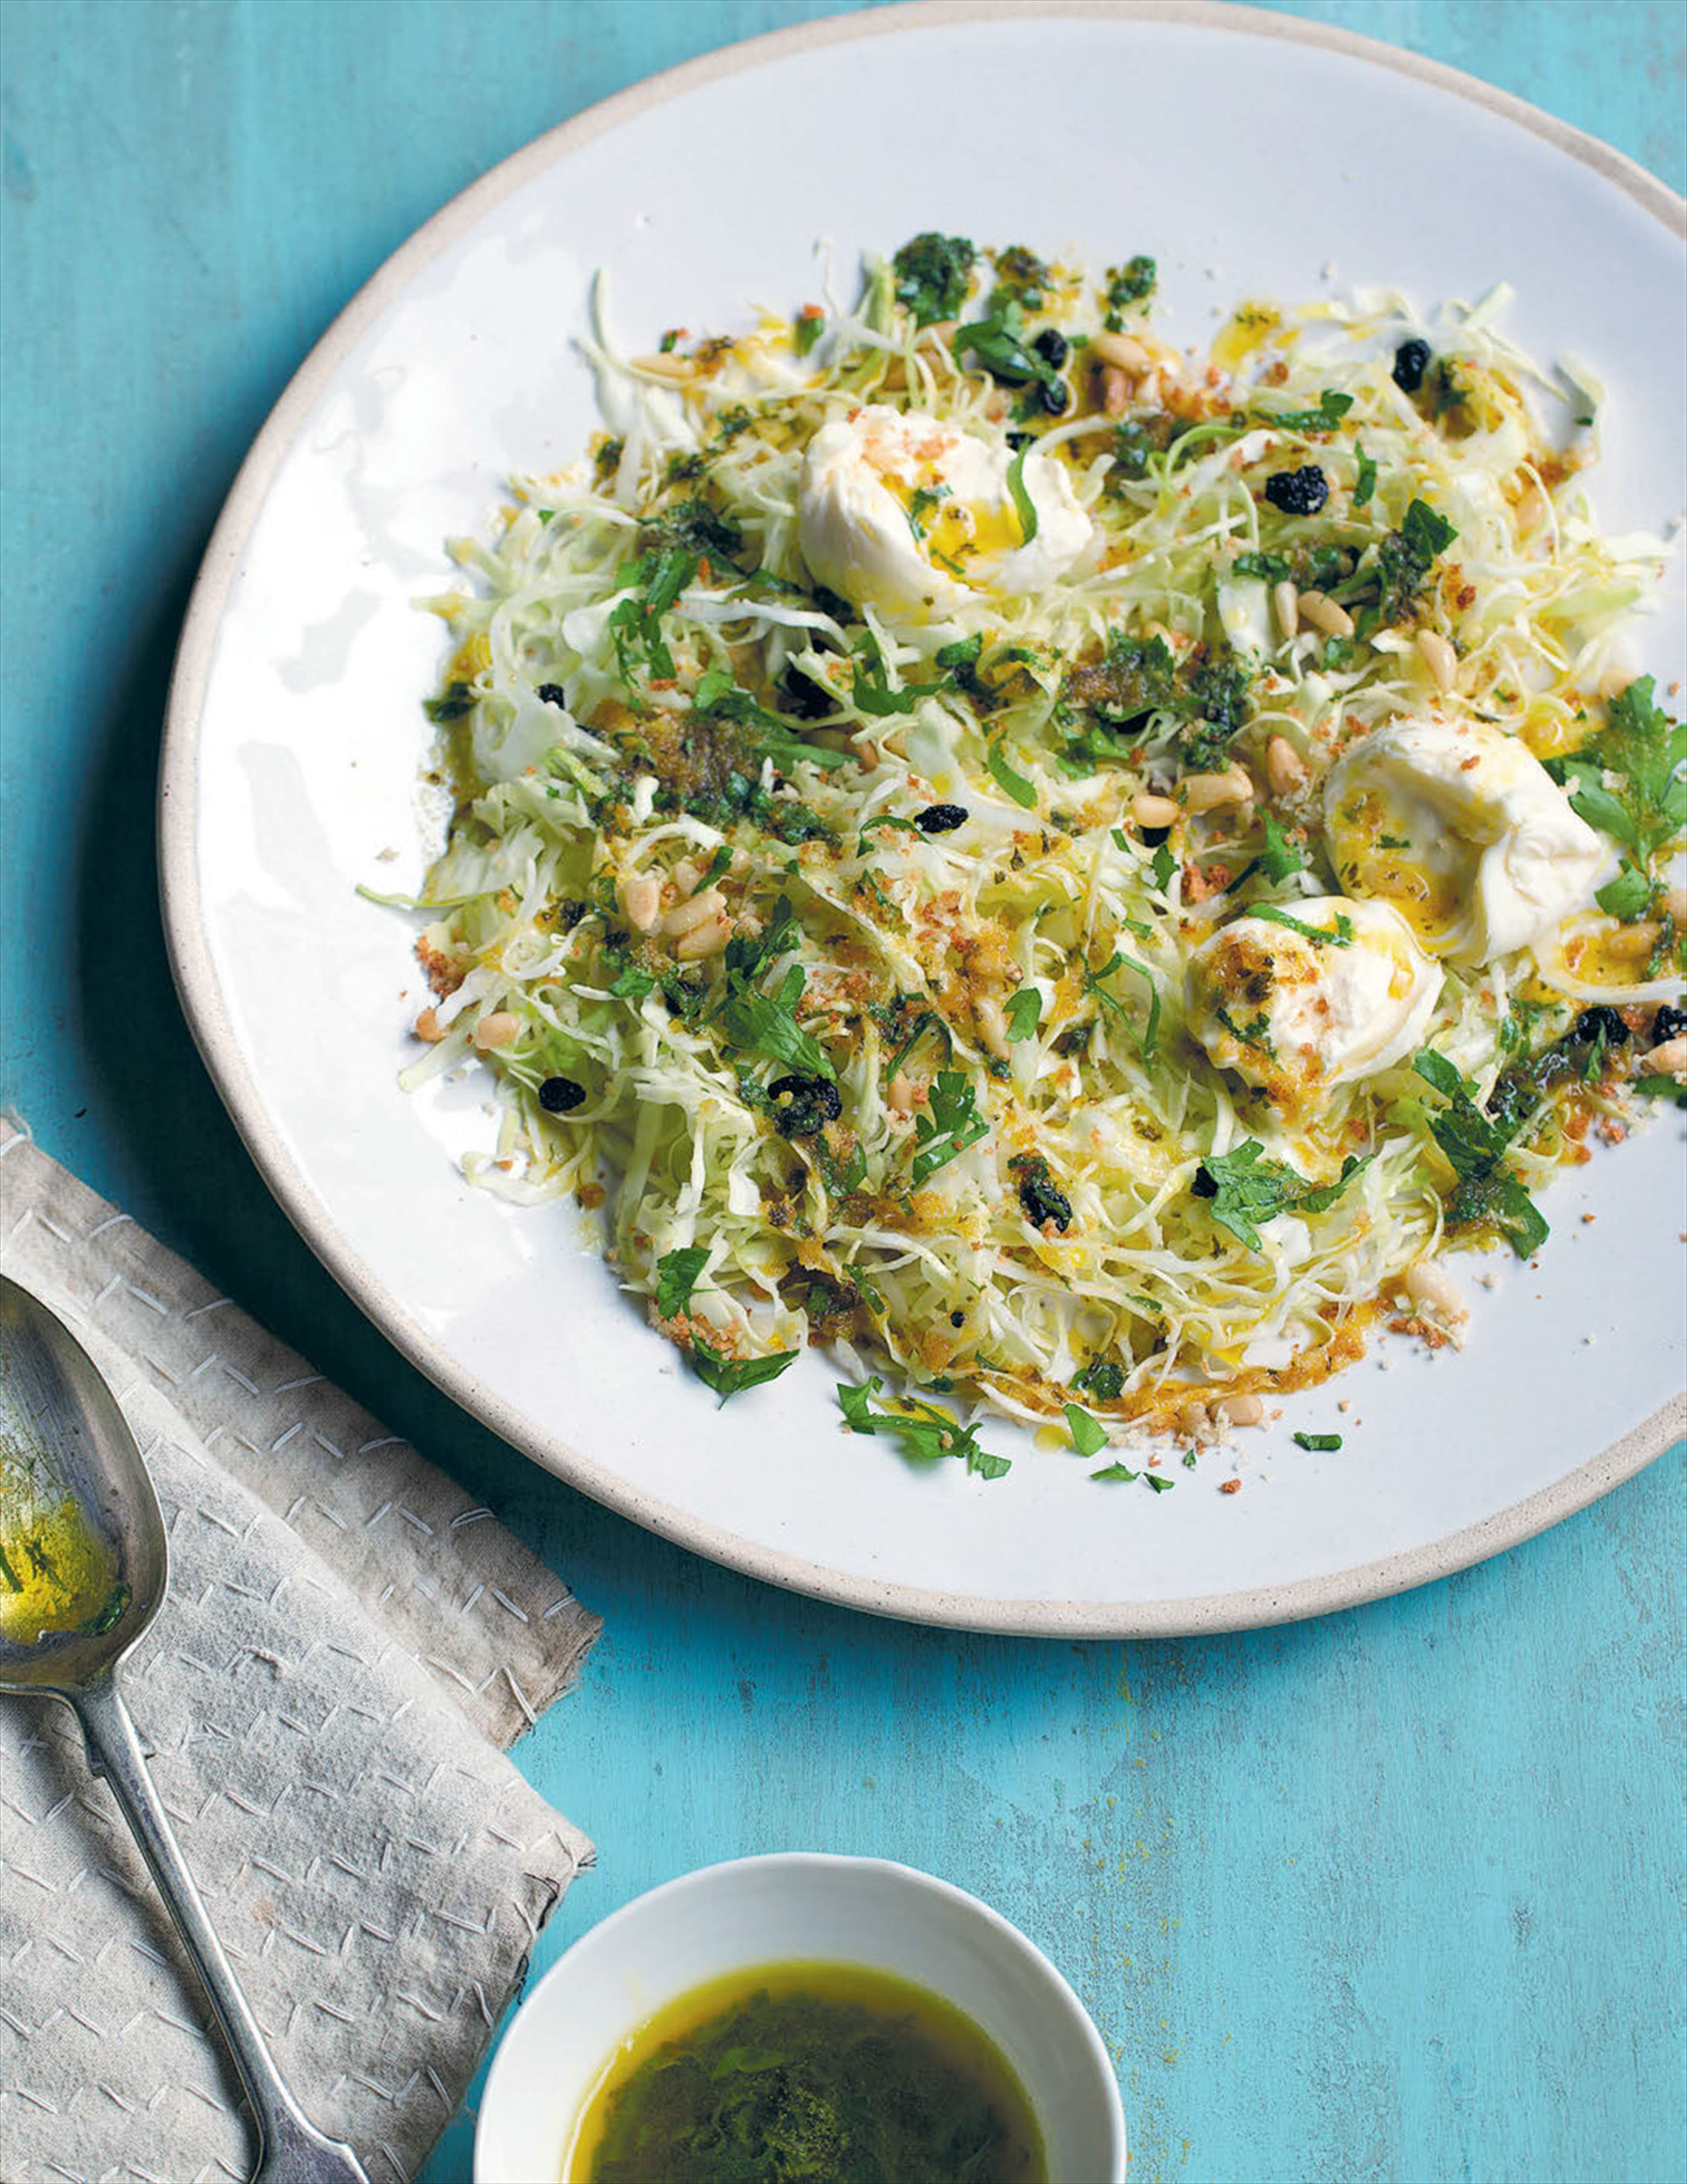 Shredded sugarloaf cabbage with burrata and spiced butter